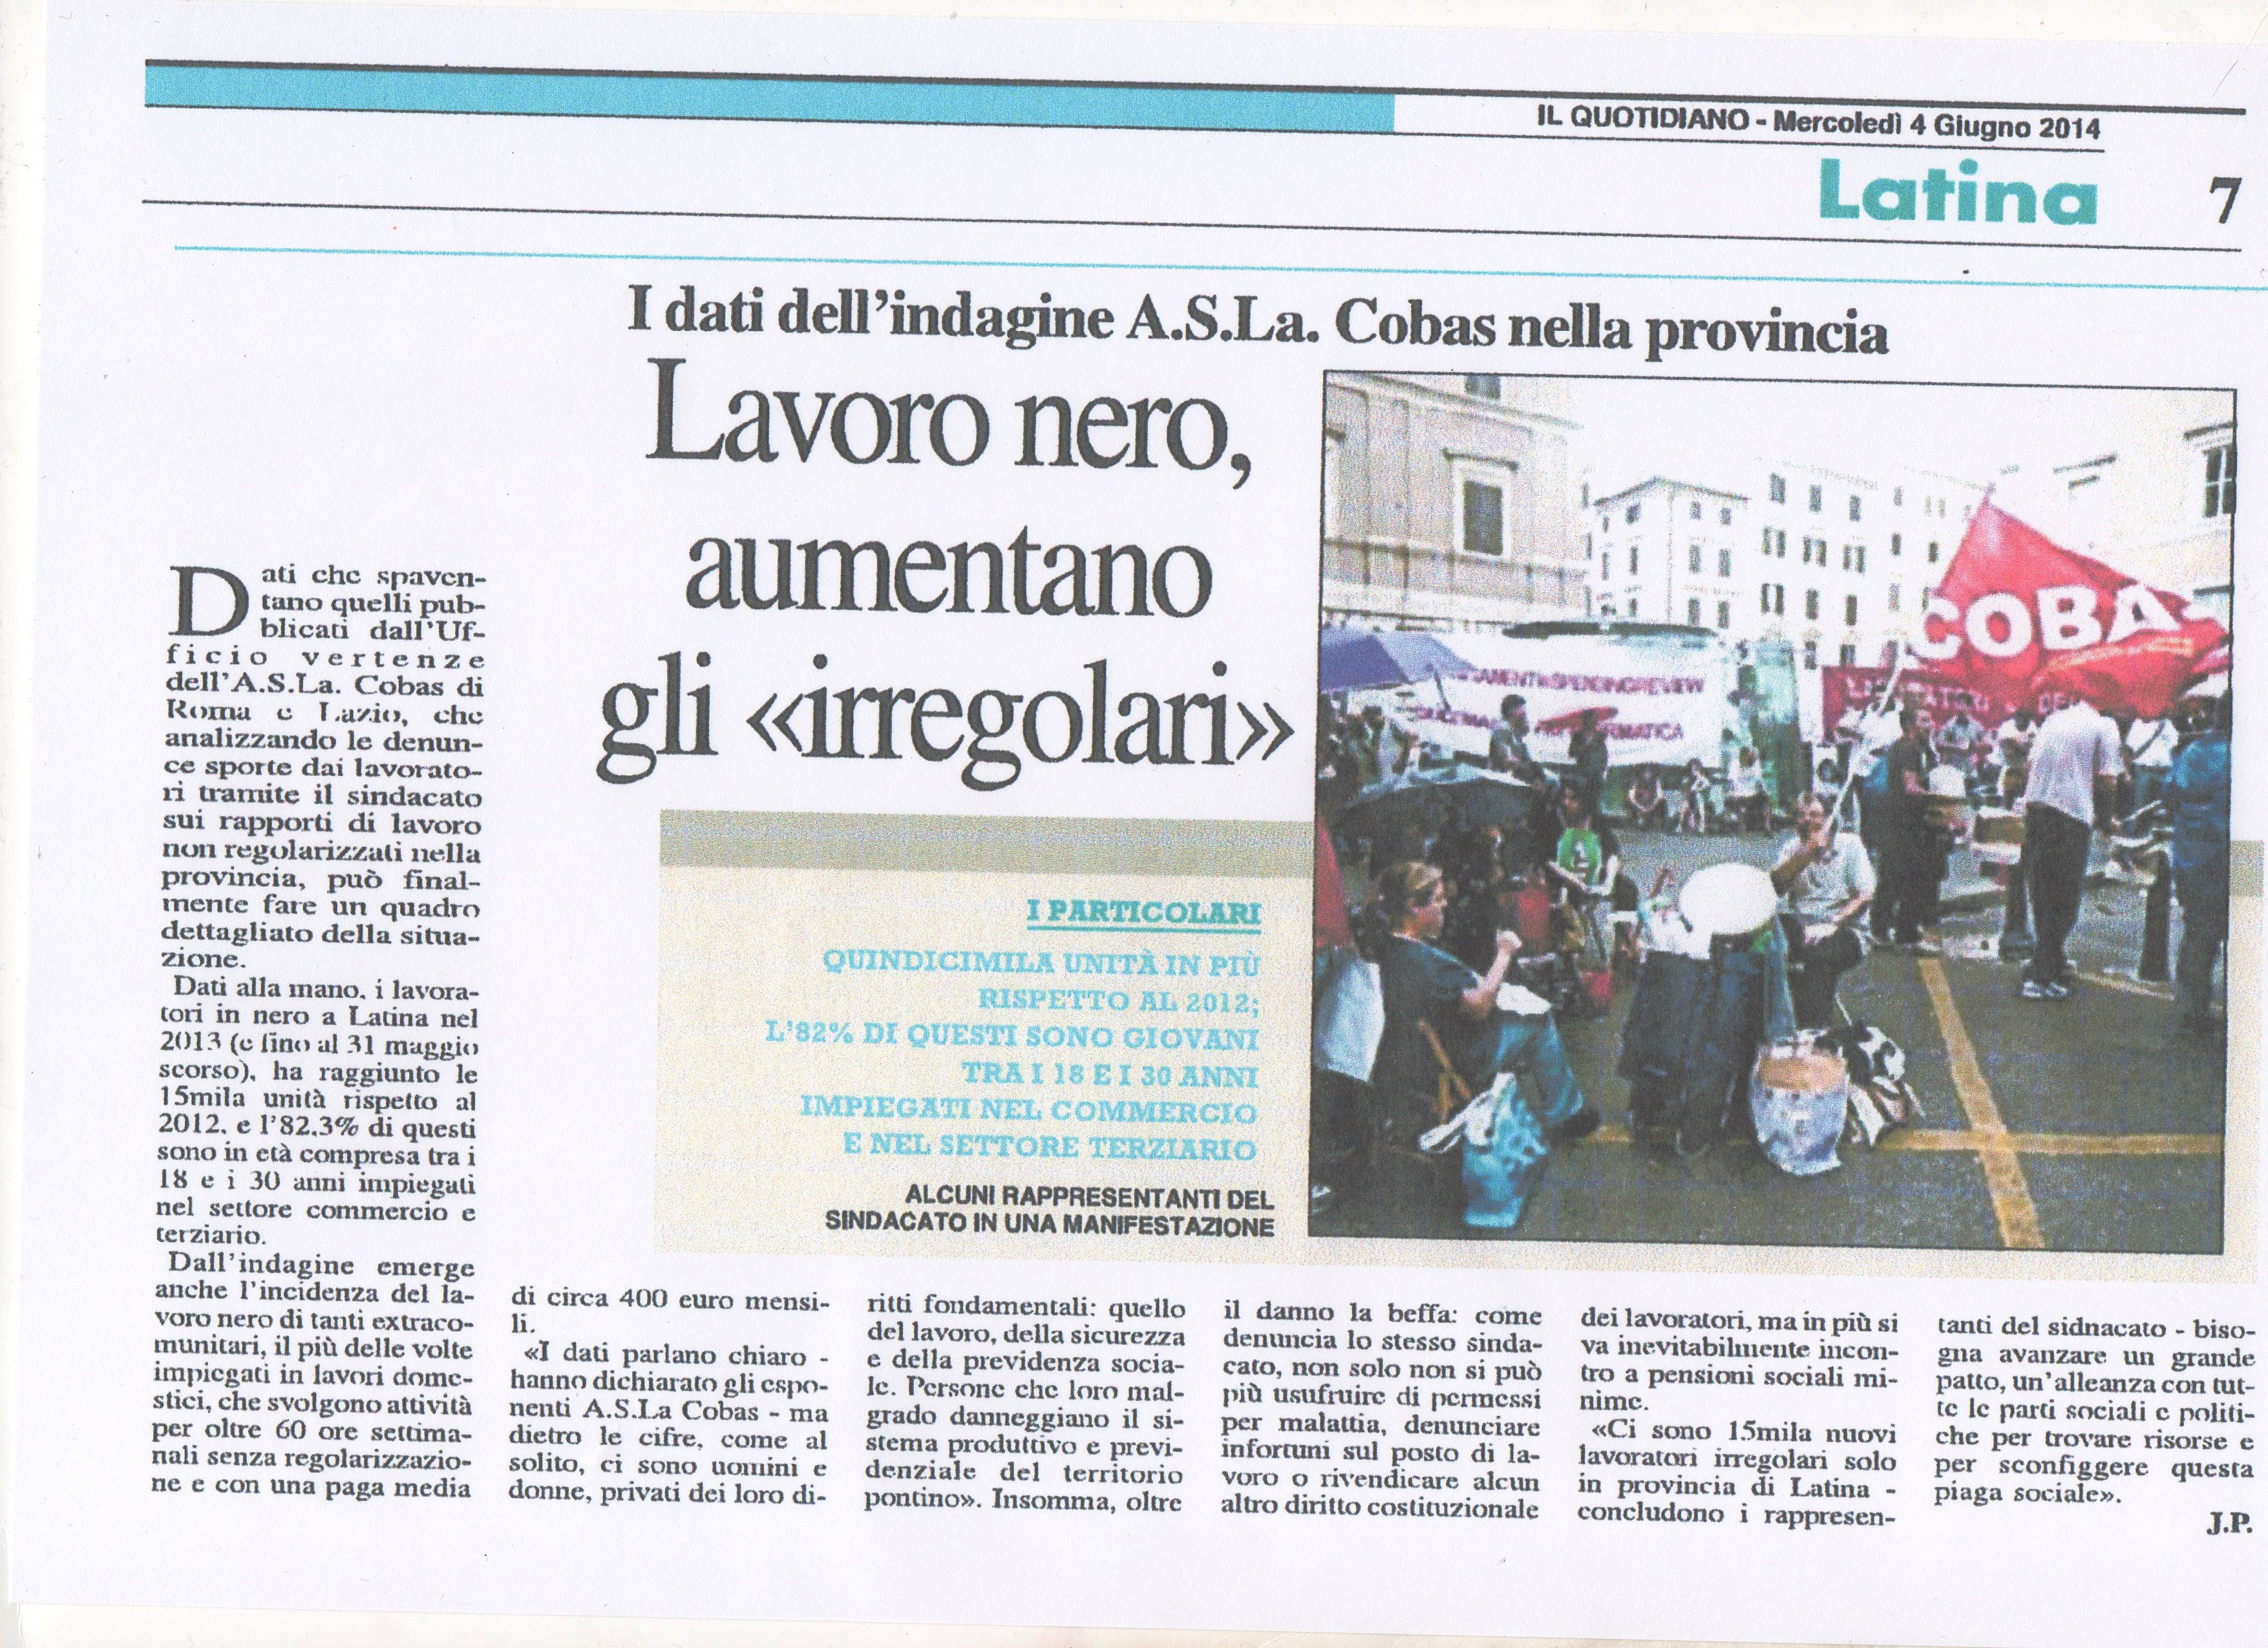 LIL QUOTIDIANO LATINA DEL 4 GIUGNO 2014002